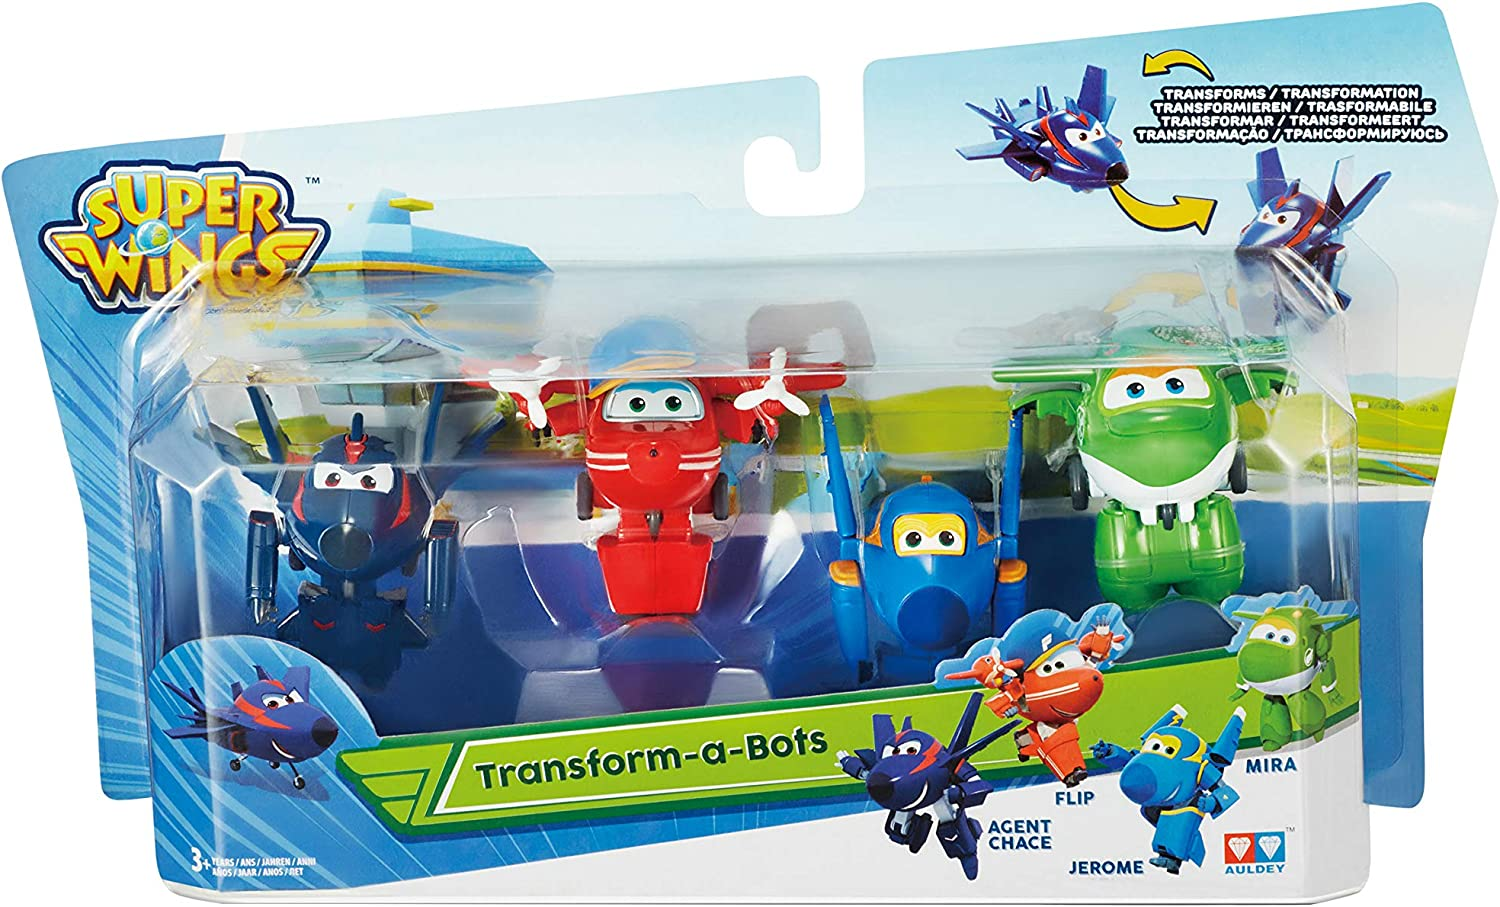 Super Wings Agent Chase, Flip, Jerome, Mira Juguete | Figuras de 5 cm, Color Mixto, 0 (Alpha Animation & Toys Ltd EU720040C): Amazon.es: Juguetes y juegos